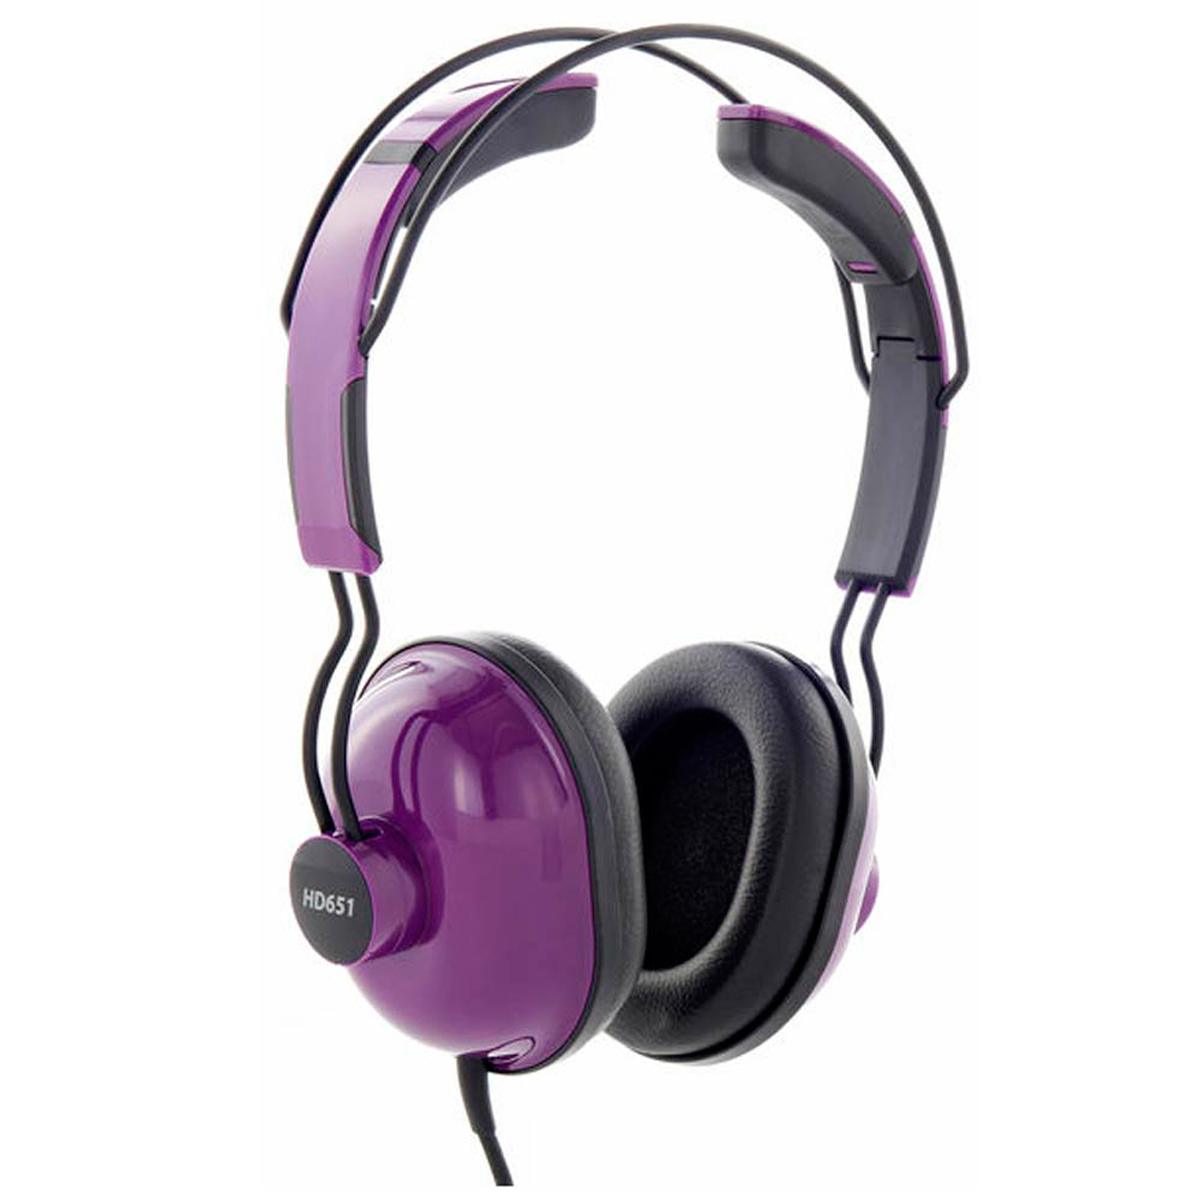 HD651 - Fone de Ouvido On-ear Roxo HD 651 - Superlux